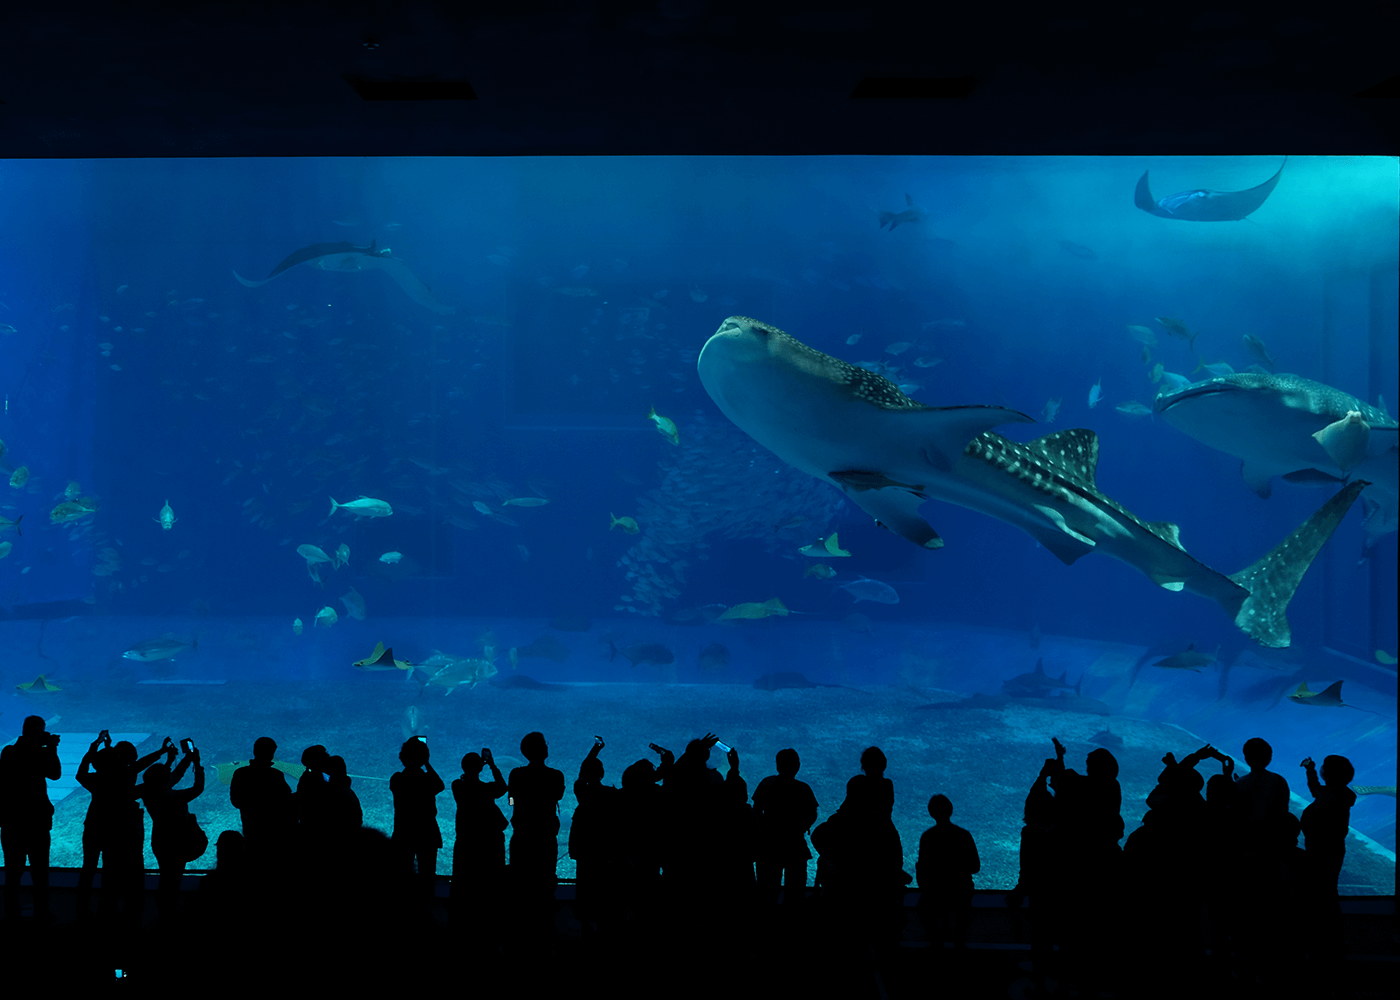 沖縄美ら海水族館(Okinawa Churaumi Aquarium)